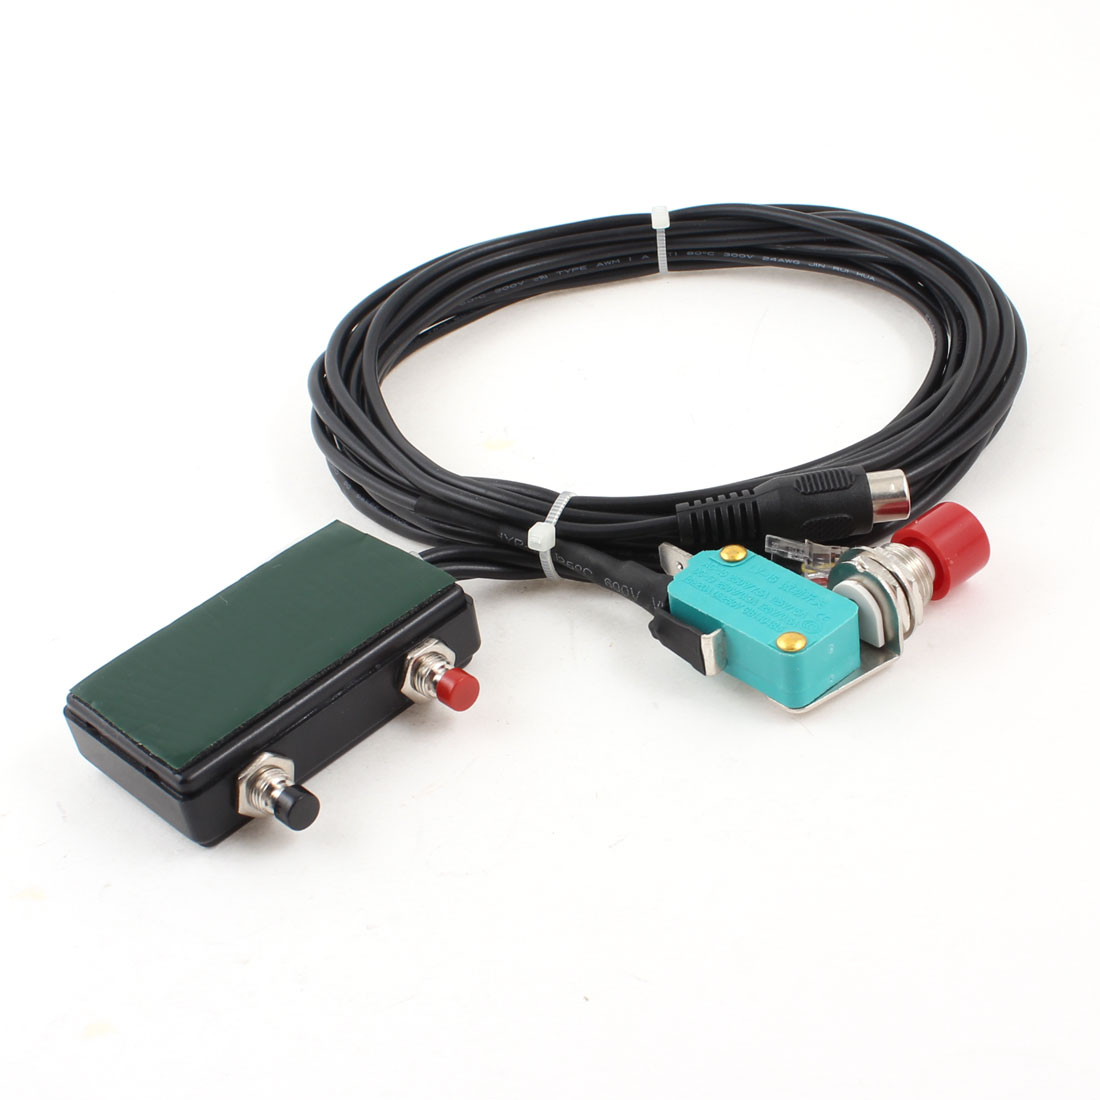 RJ45-Crystal-Head-Vehicle-Handsfree-Microphone-for-YAESU-FT-1802-Two-Way-Radios